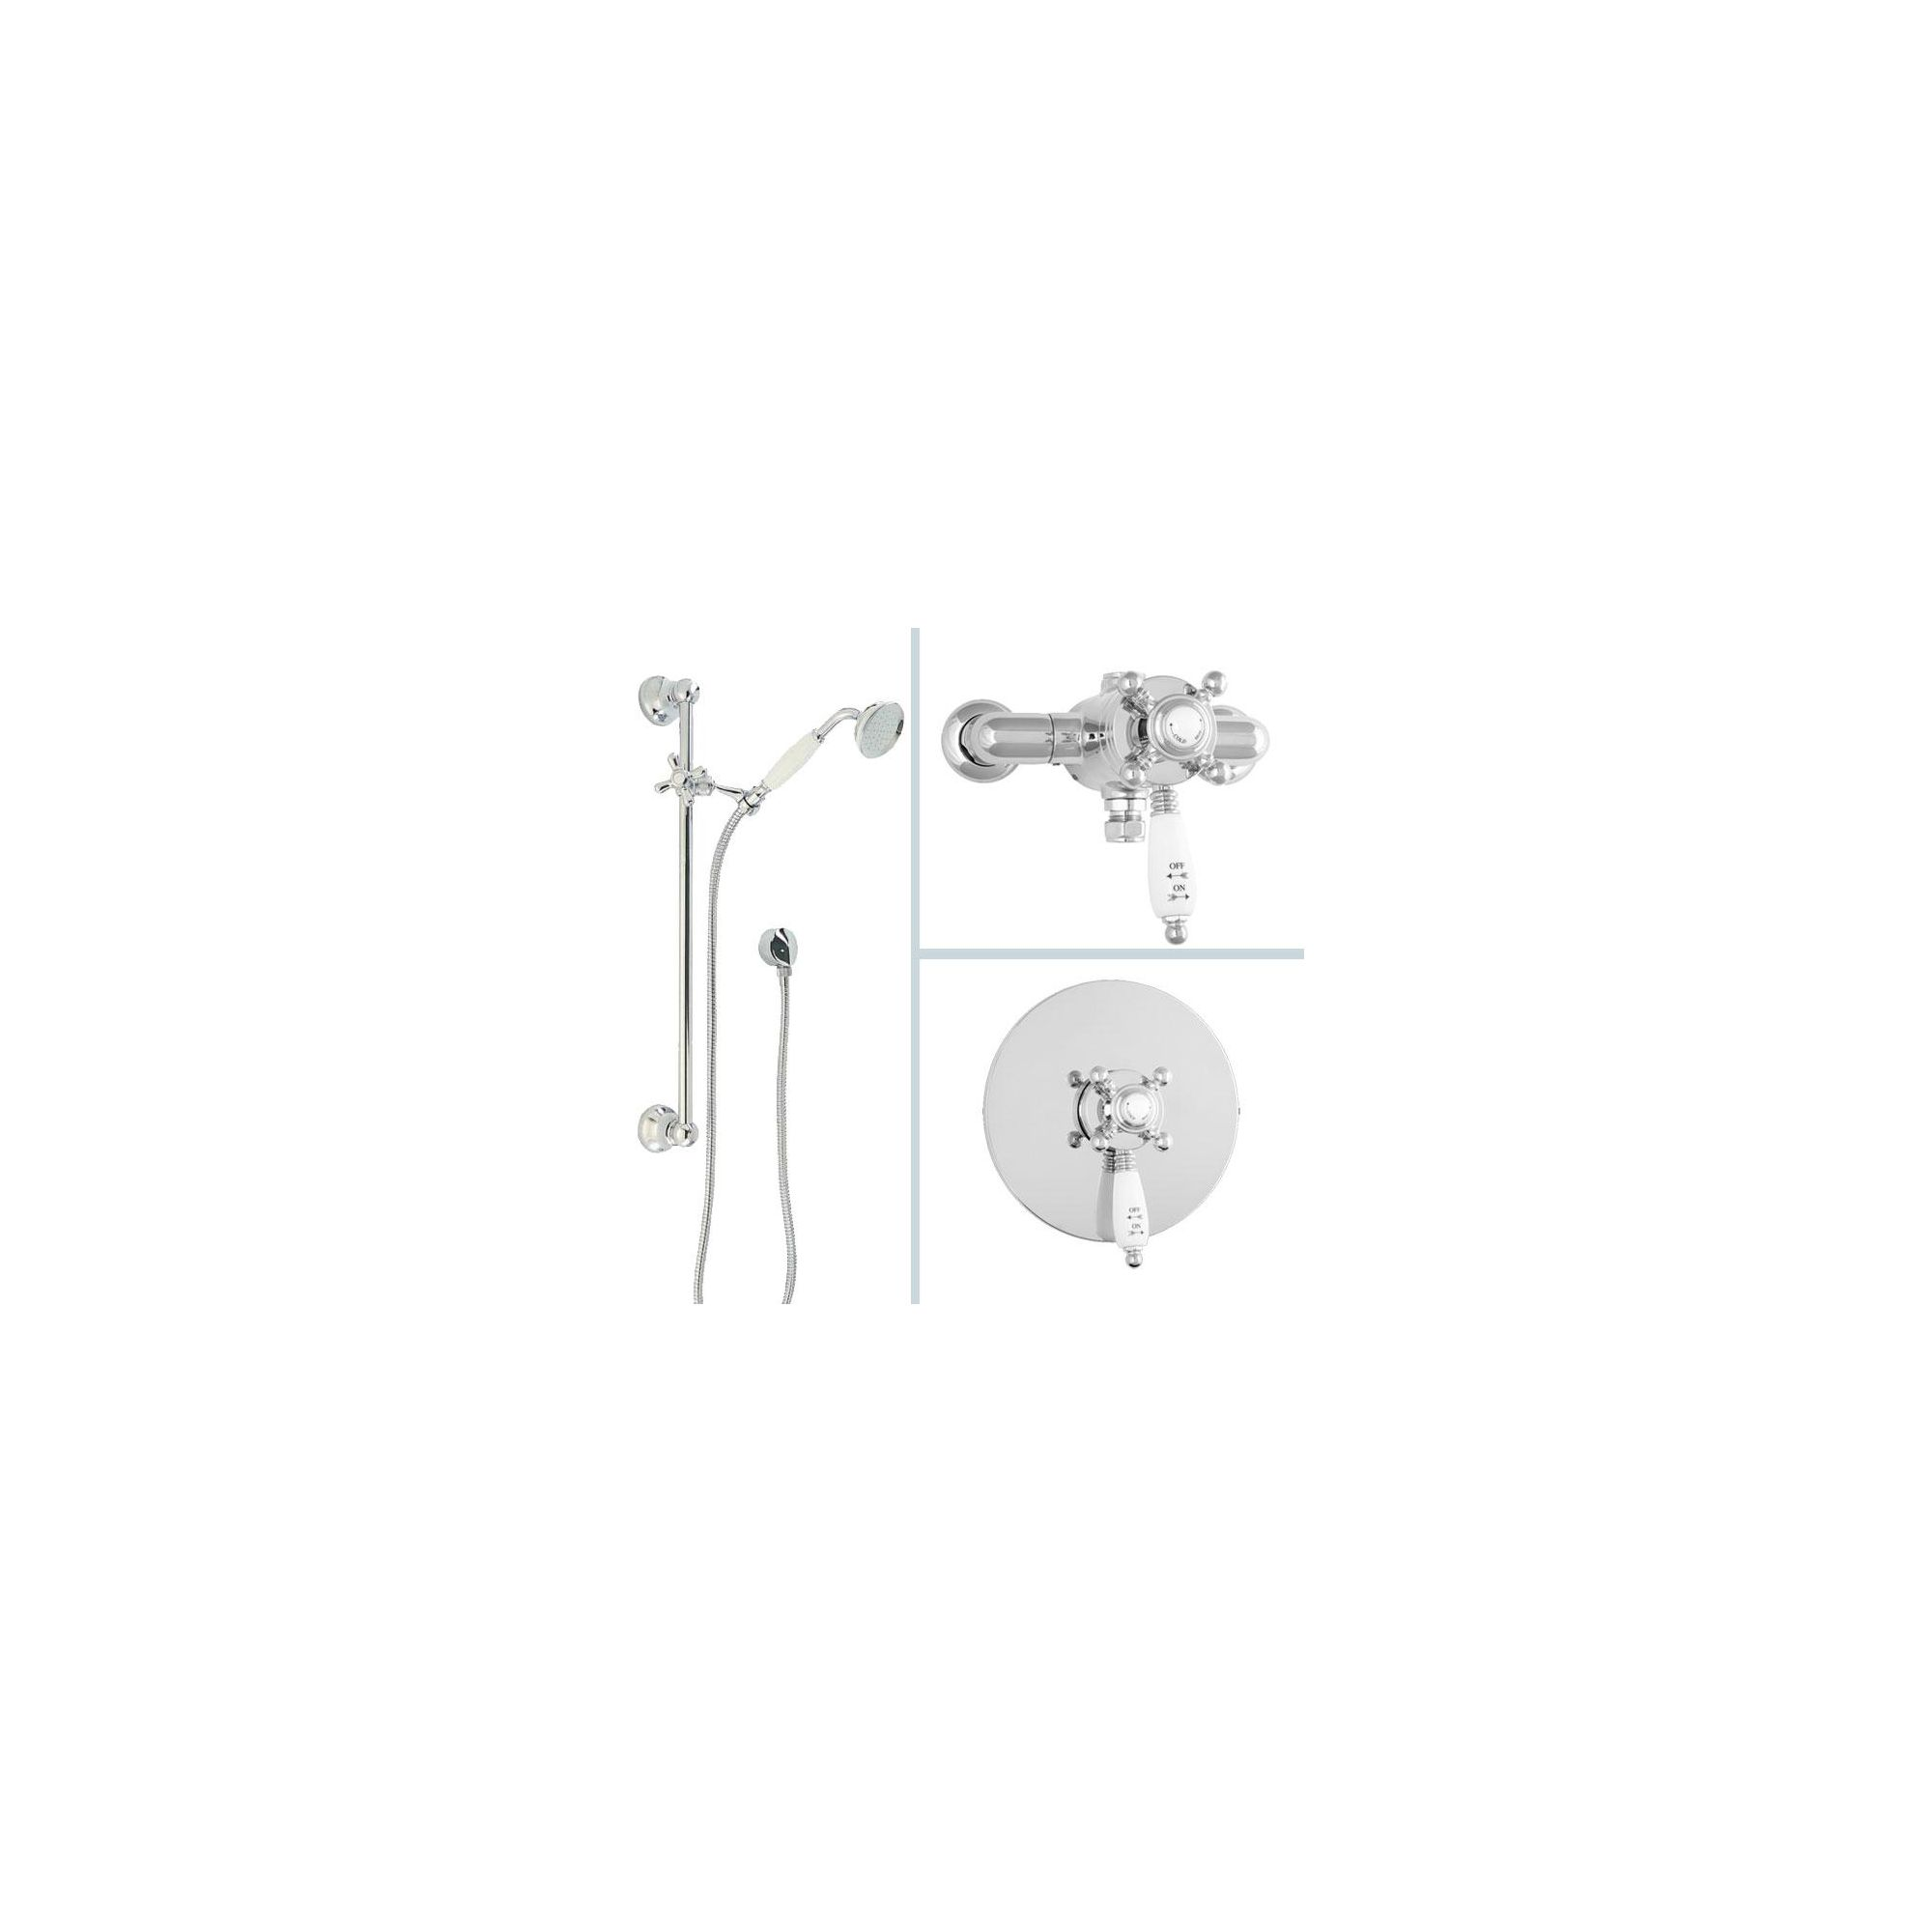 Deva Georgian Complete Thermostatic Shower with Single Function Kit Chrome at Tesco Direct